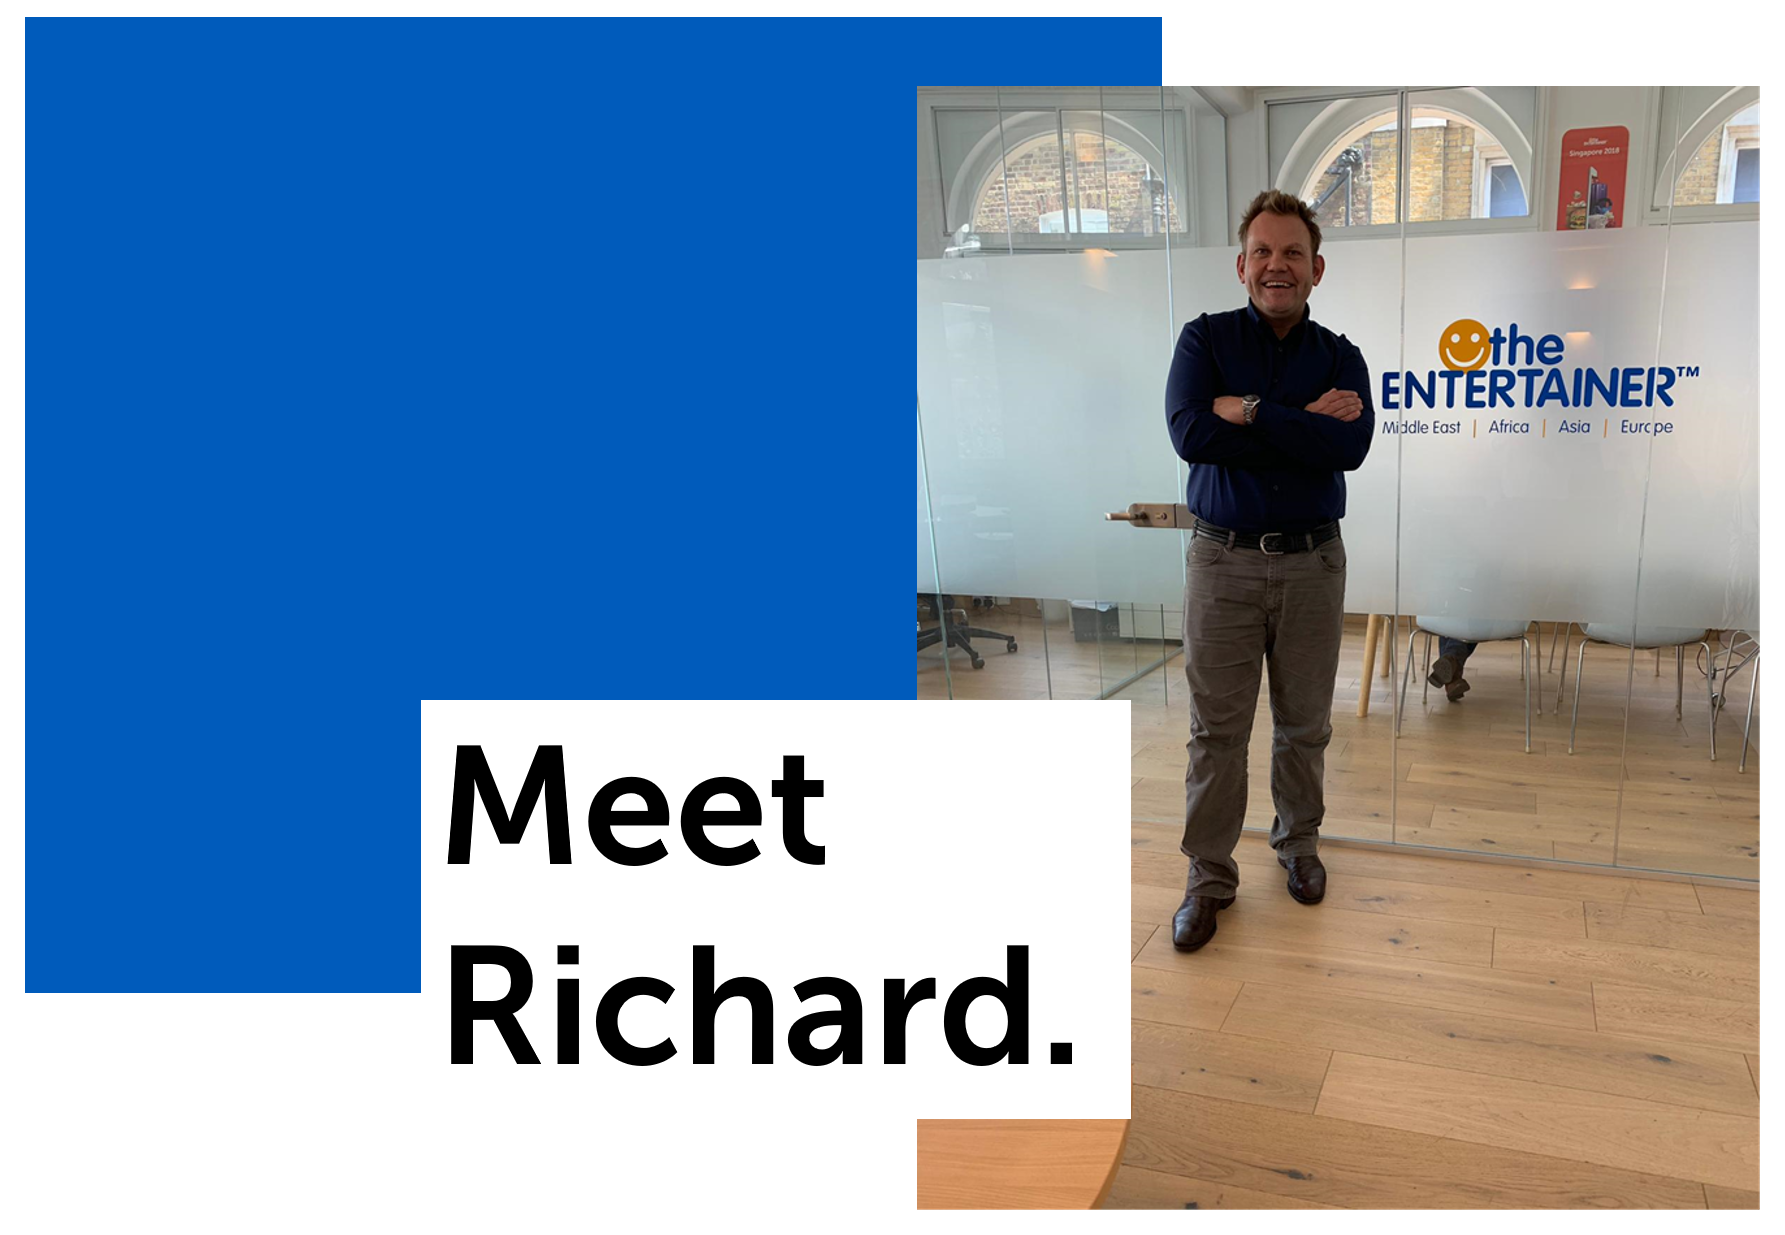 We Are ENTERTAINER: Meet Richard